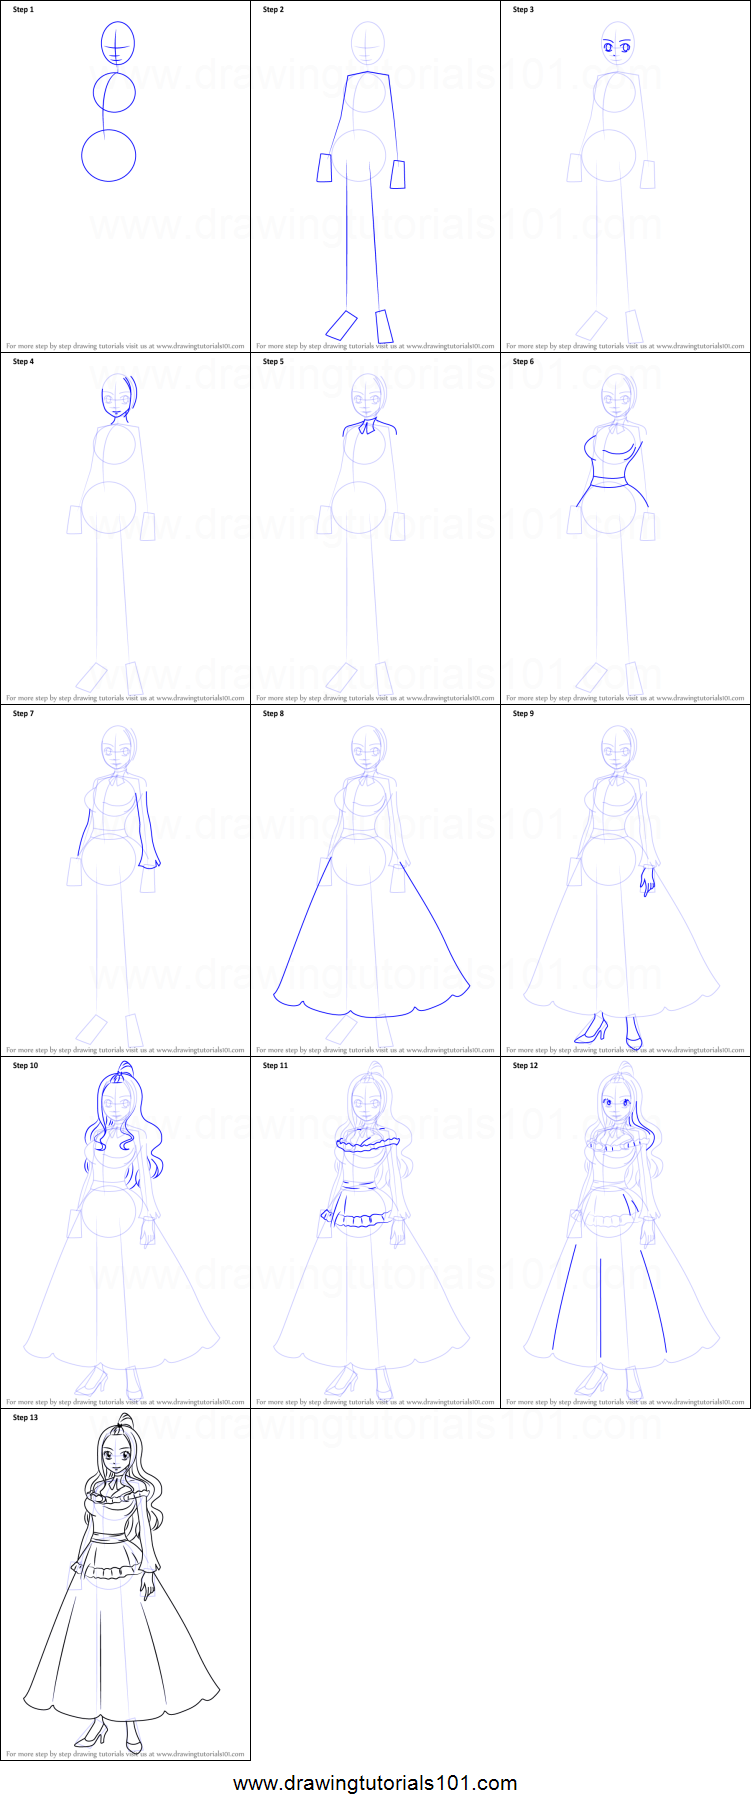 How To Draw Mirajane Strauss From Fairy Tail Printable Step By Step Drawing Sheet Drawingtutorials101 Com I've mostly pulled out of doing the espionage work myself. how to draw mirajane strauss from fairy